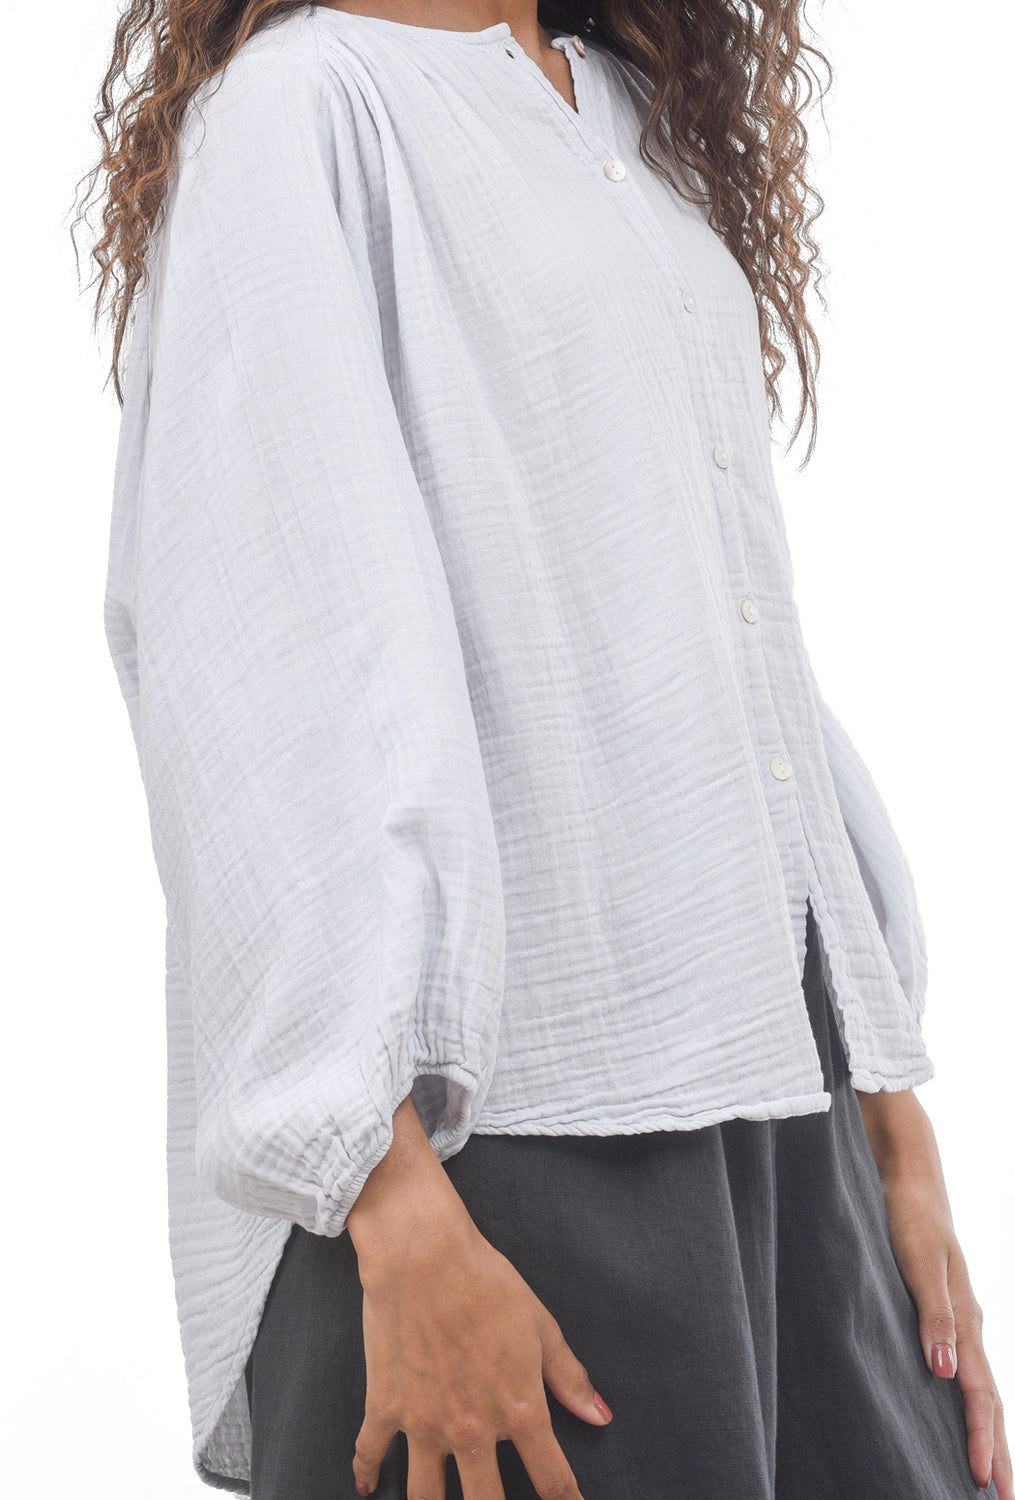 Filosofia Shirley Blouse, Hazy Gray